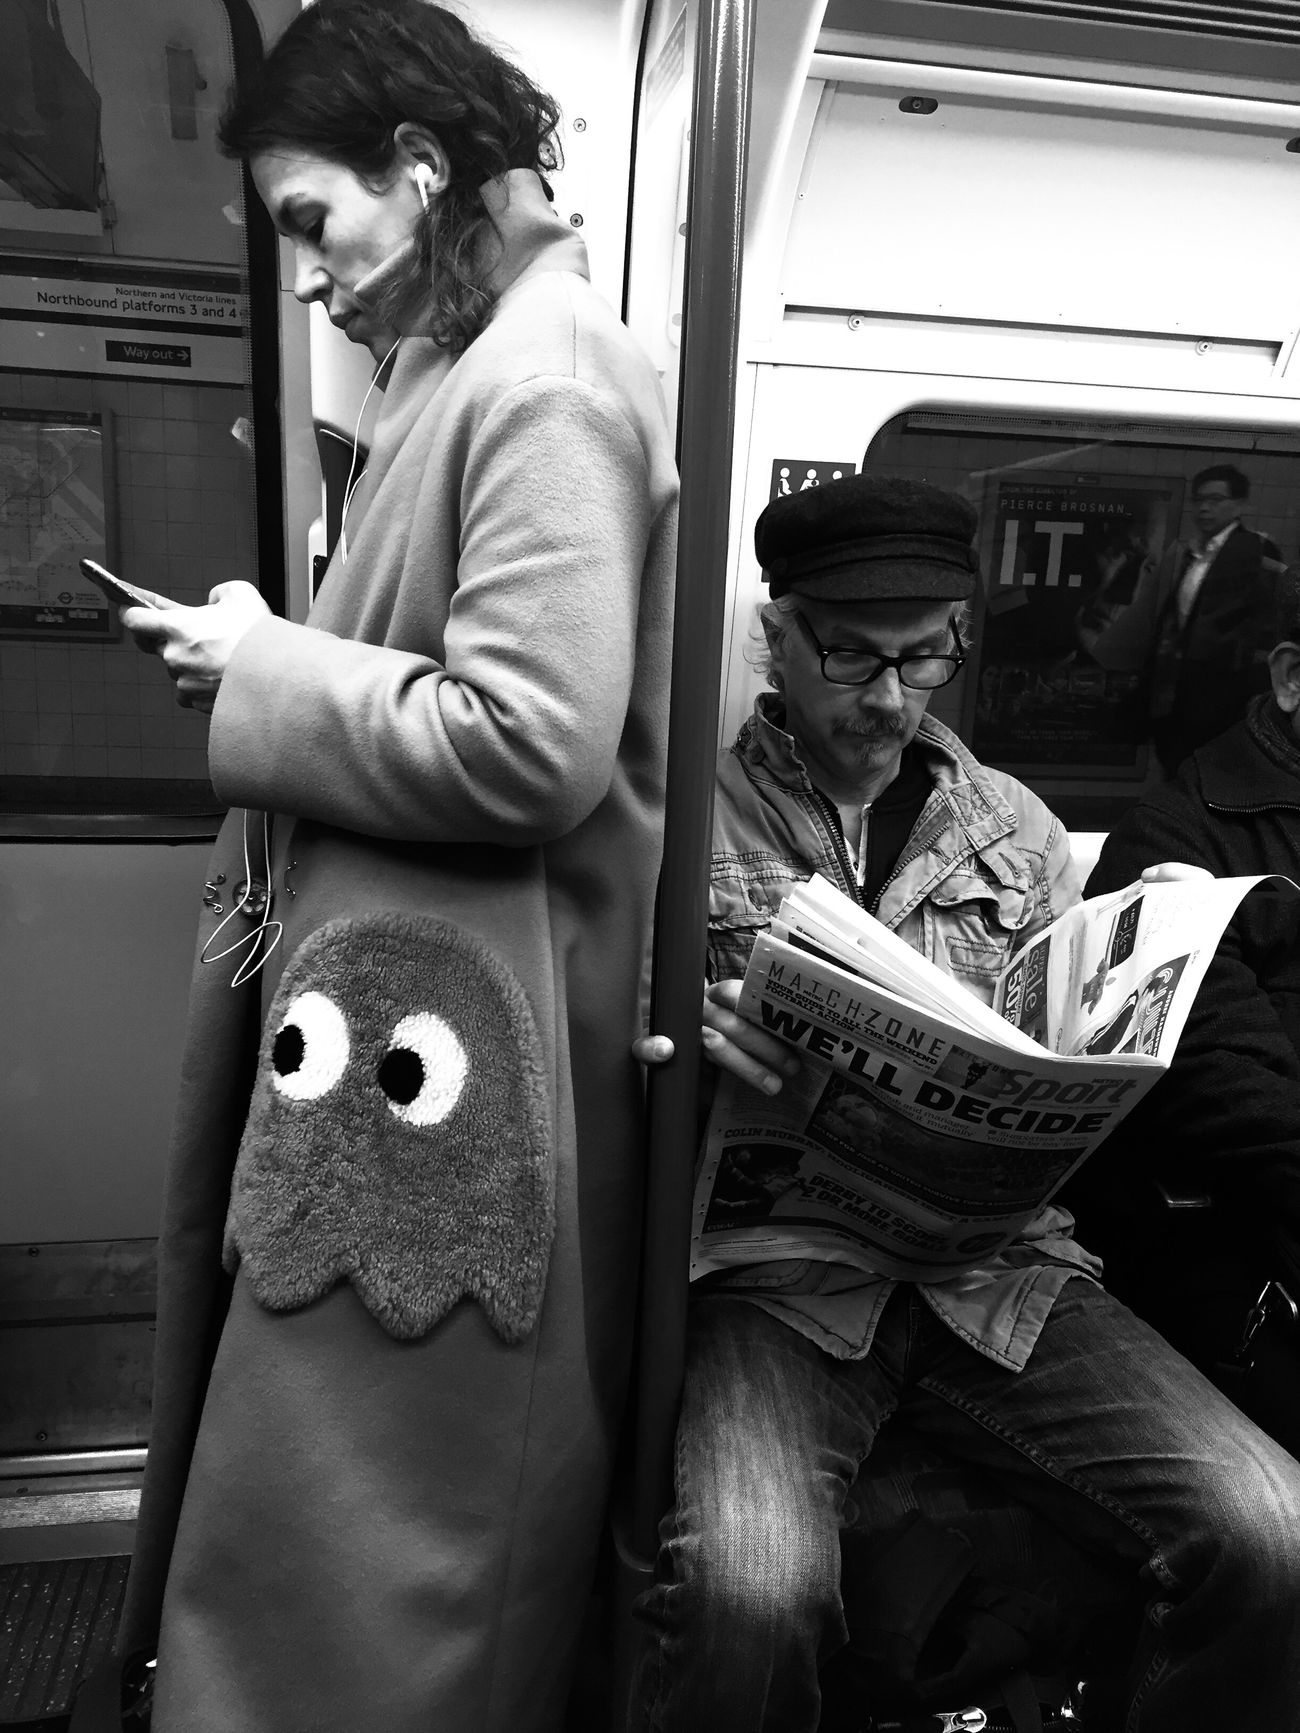 Was she playing pacman? Real People Women IPhoneography LONDON❤ Black And White Photography Black & White Street Photography Clothes Funny People Photography Pacman